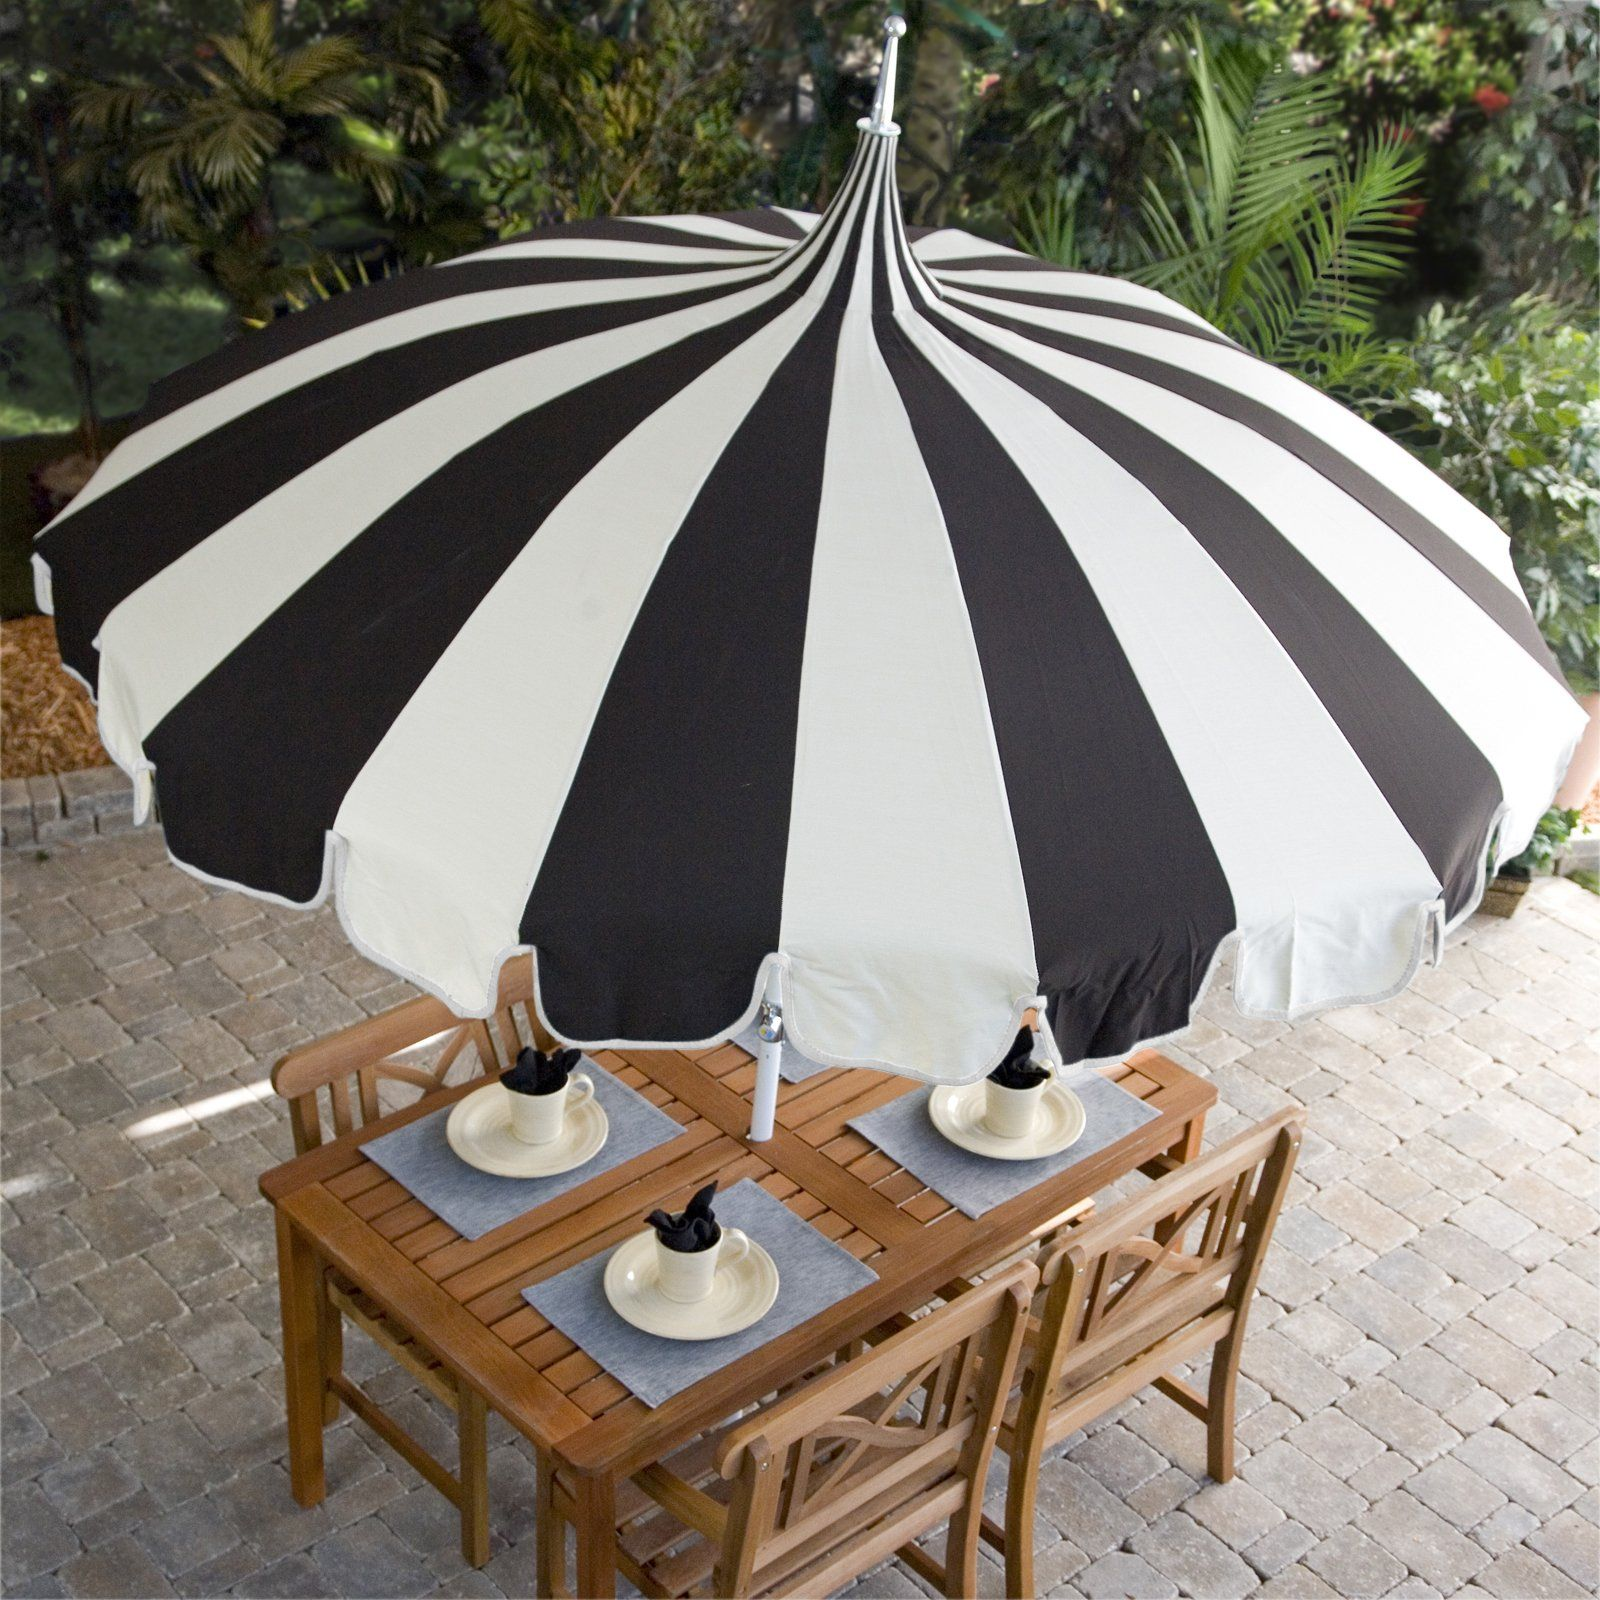 Have to have it Pagoda 8 5 ft Patio Umbrella by California